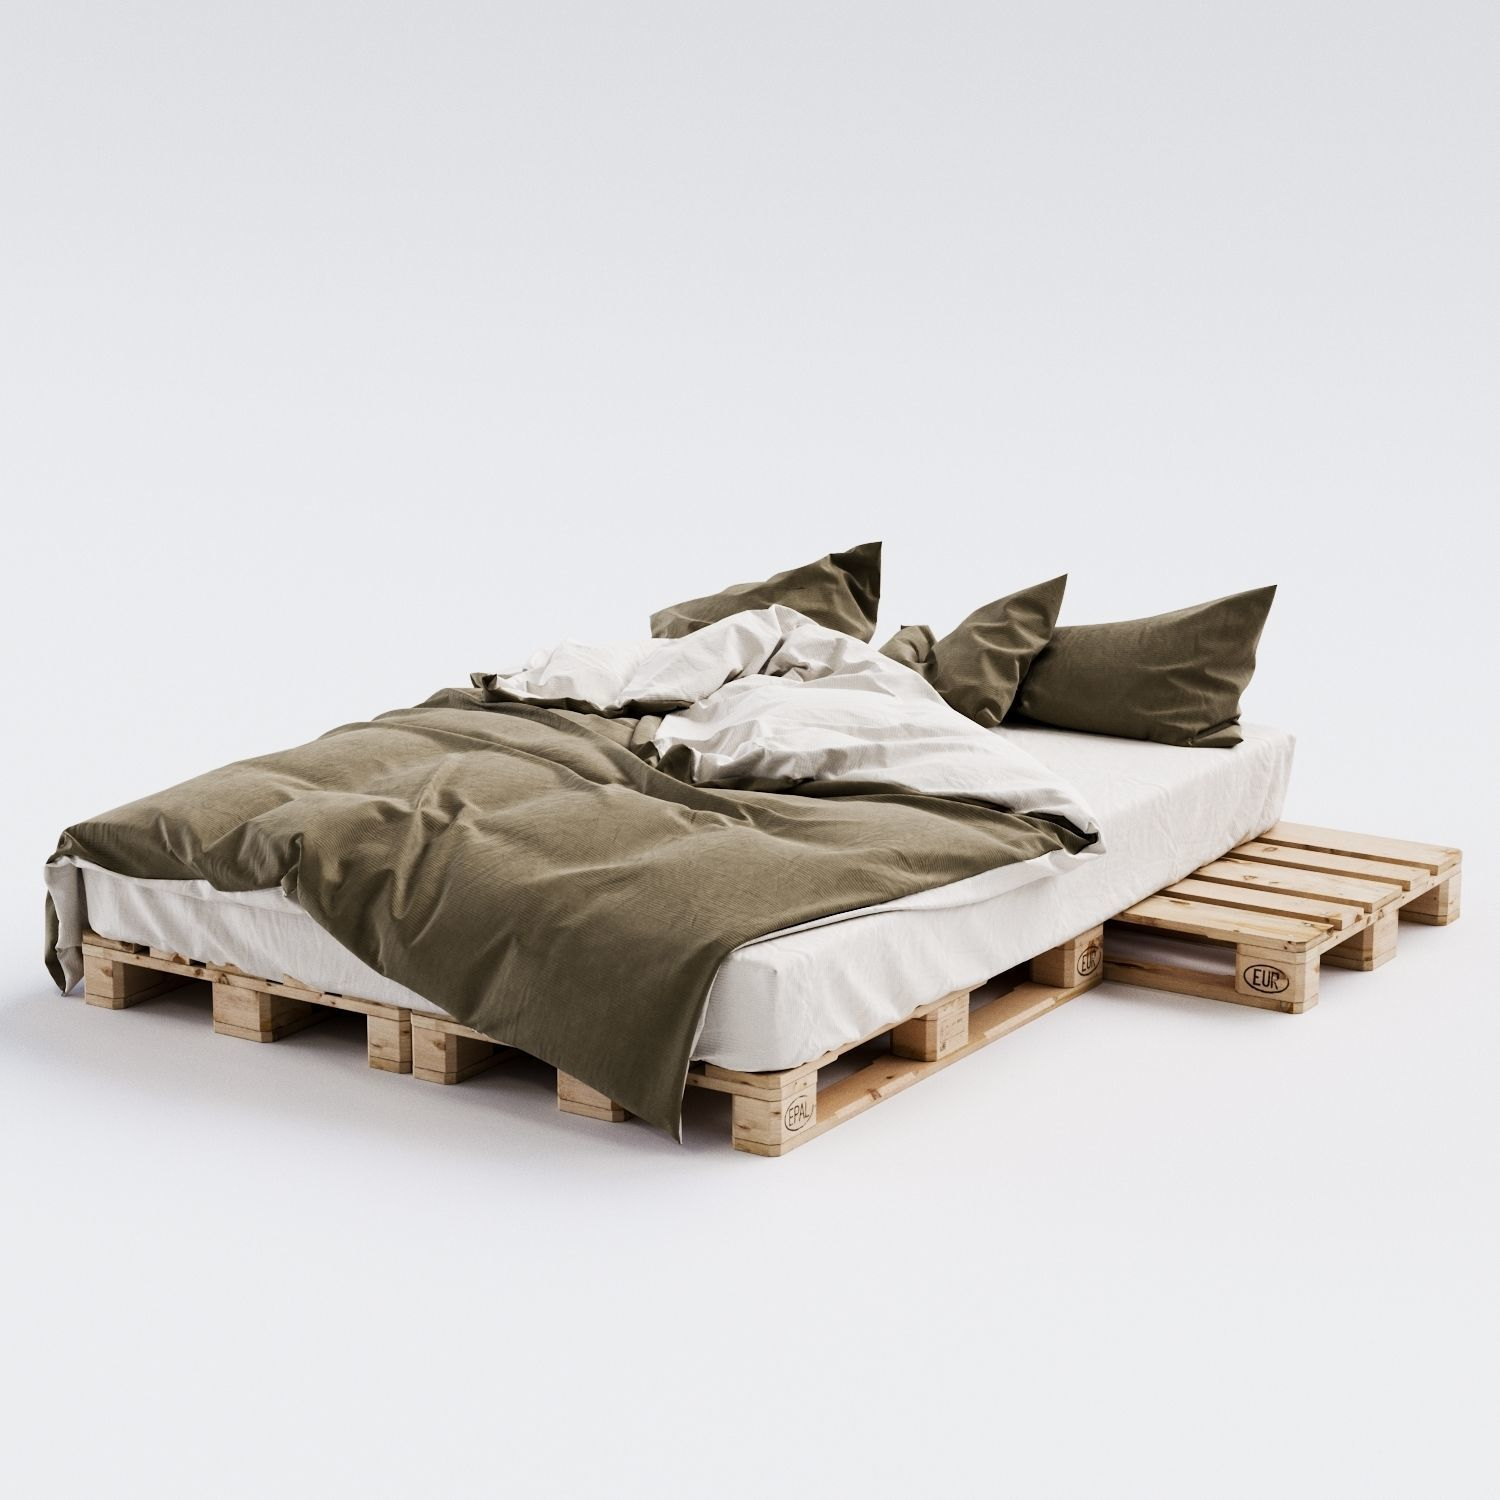 Euro Pallet Bed 3d Cgtrader